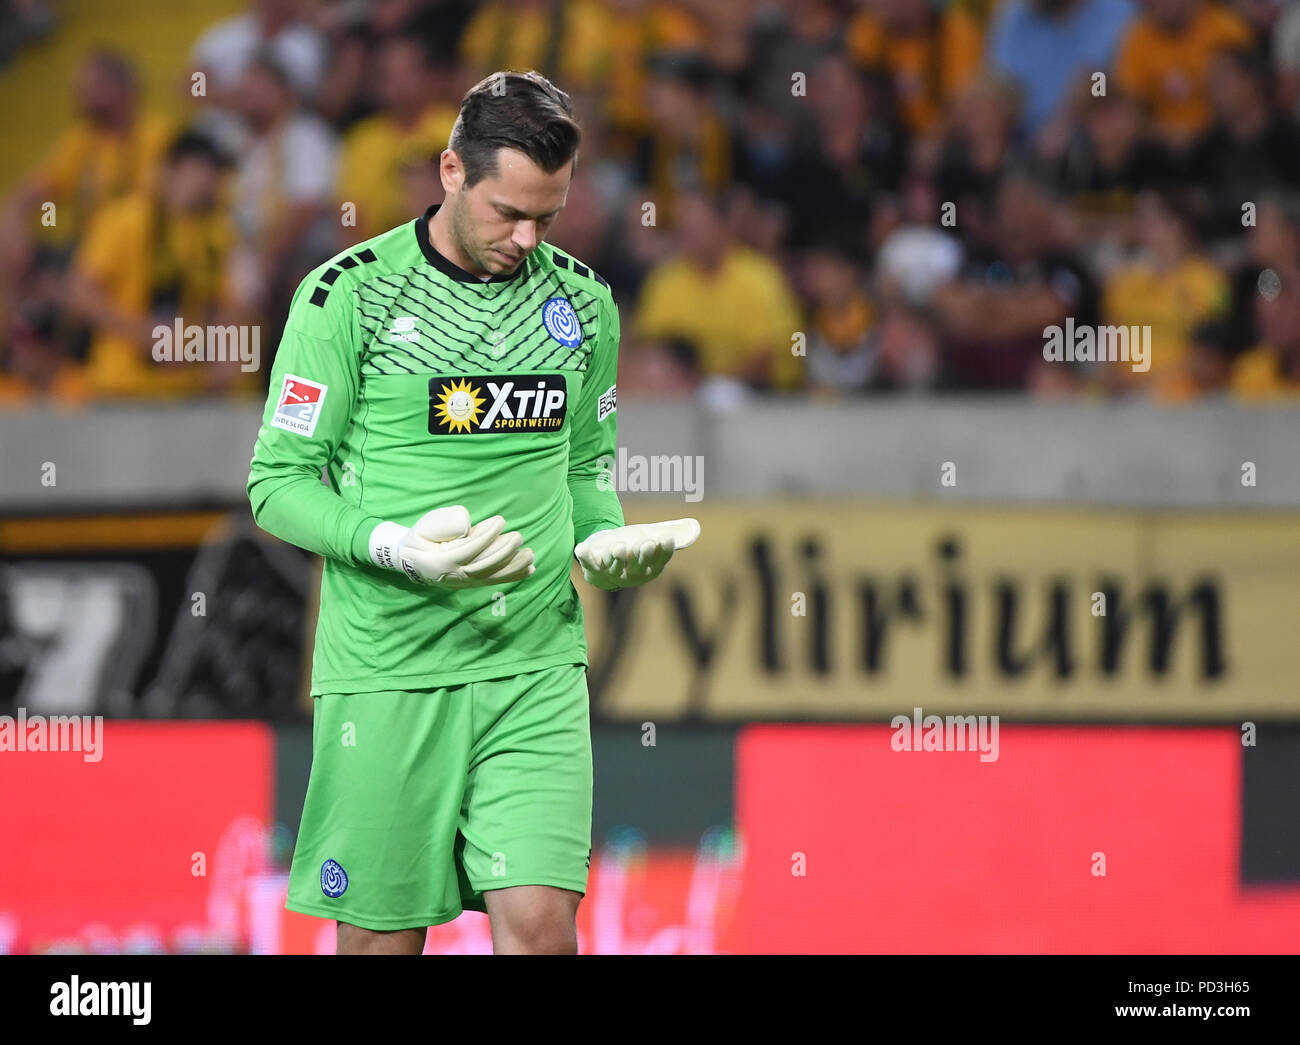 Dresden, Germany. 06th Aug, 2018. 06.08.2018, Saxony, Dresden: Soccer, 2nd Bundesliga, 1st Matchday, Dynamo Dresden vs MSV Duisburg in the DDV Stadium. Duisburg goalkeeper Daniel Davari looks at his hands. IMPORTANT NOTE: DFL regulations prohibit any use of photographs as image sequences and/or quasi-video. Credit: Monika Skolimowska/dpa-Zentralbild/dpa/Alamy Live News - Stock Image